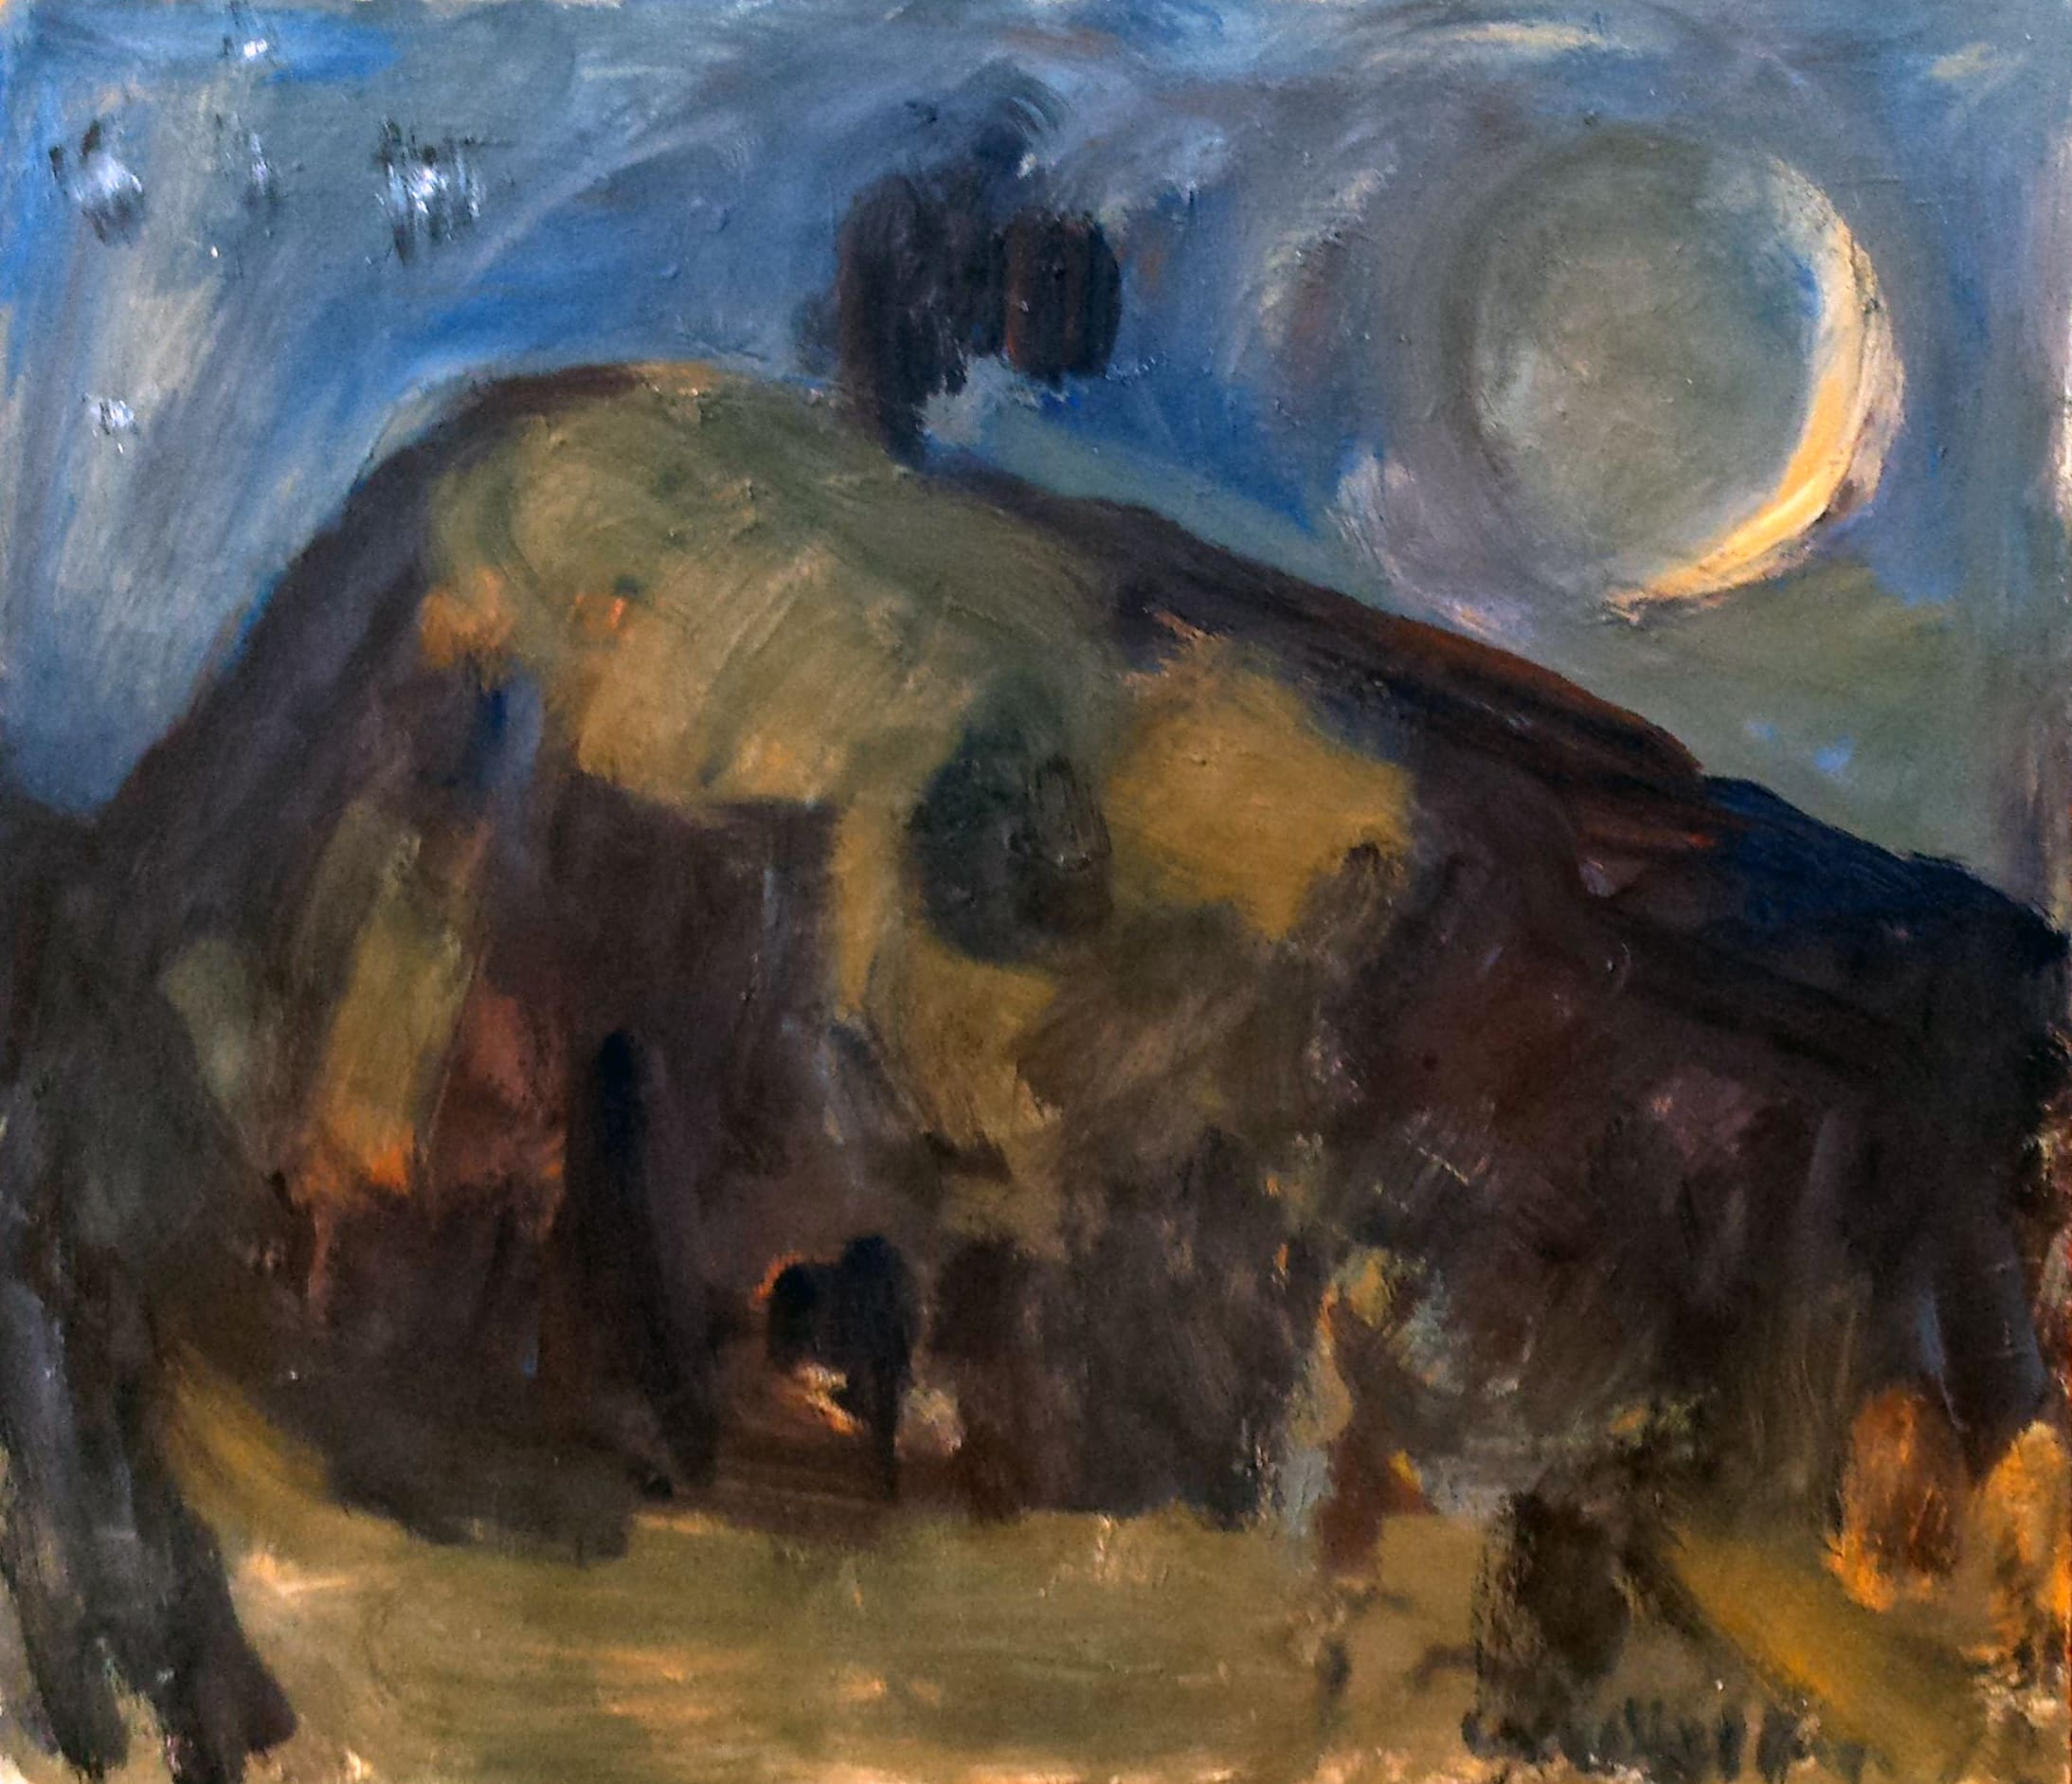 <span class=&#34;link fancybox-details-link&#34;><a href=&#34;/exhibitions/17/works/artworks5036/&#34;>View Detail Page</a></span><div class=&#34;signed_and_dated&#34;>Signed</div> <div class=&#34;medium&#34;>Oil on board</div> <div class=&#34;dimensions&#34;>28.3 x 31.9 x 30.7 in<br />72 x 81 x 78 cm</div>